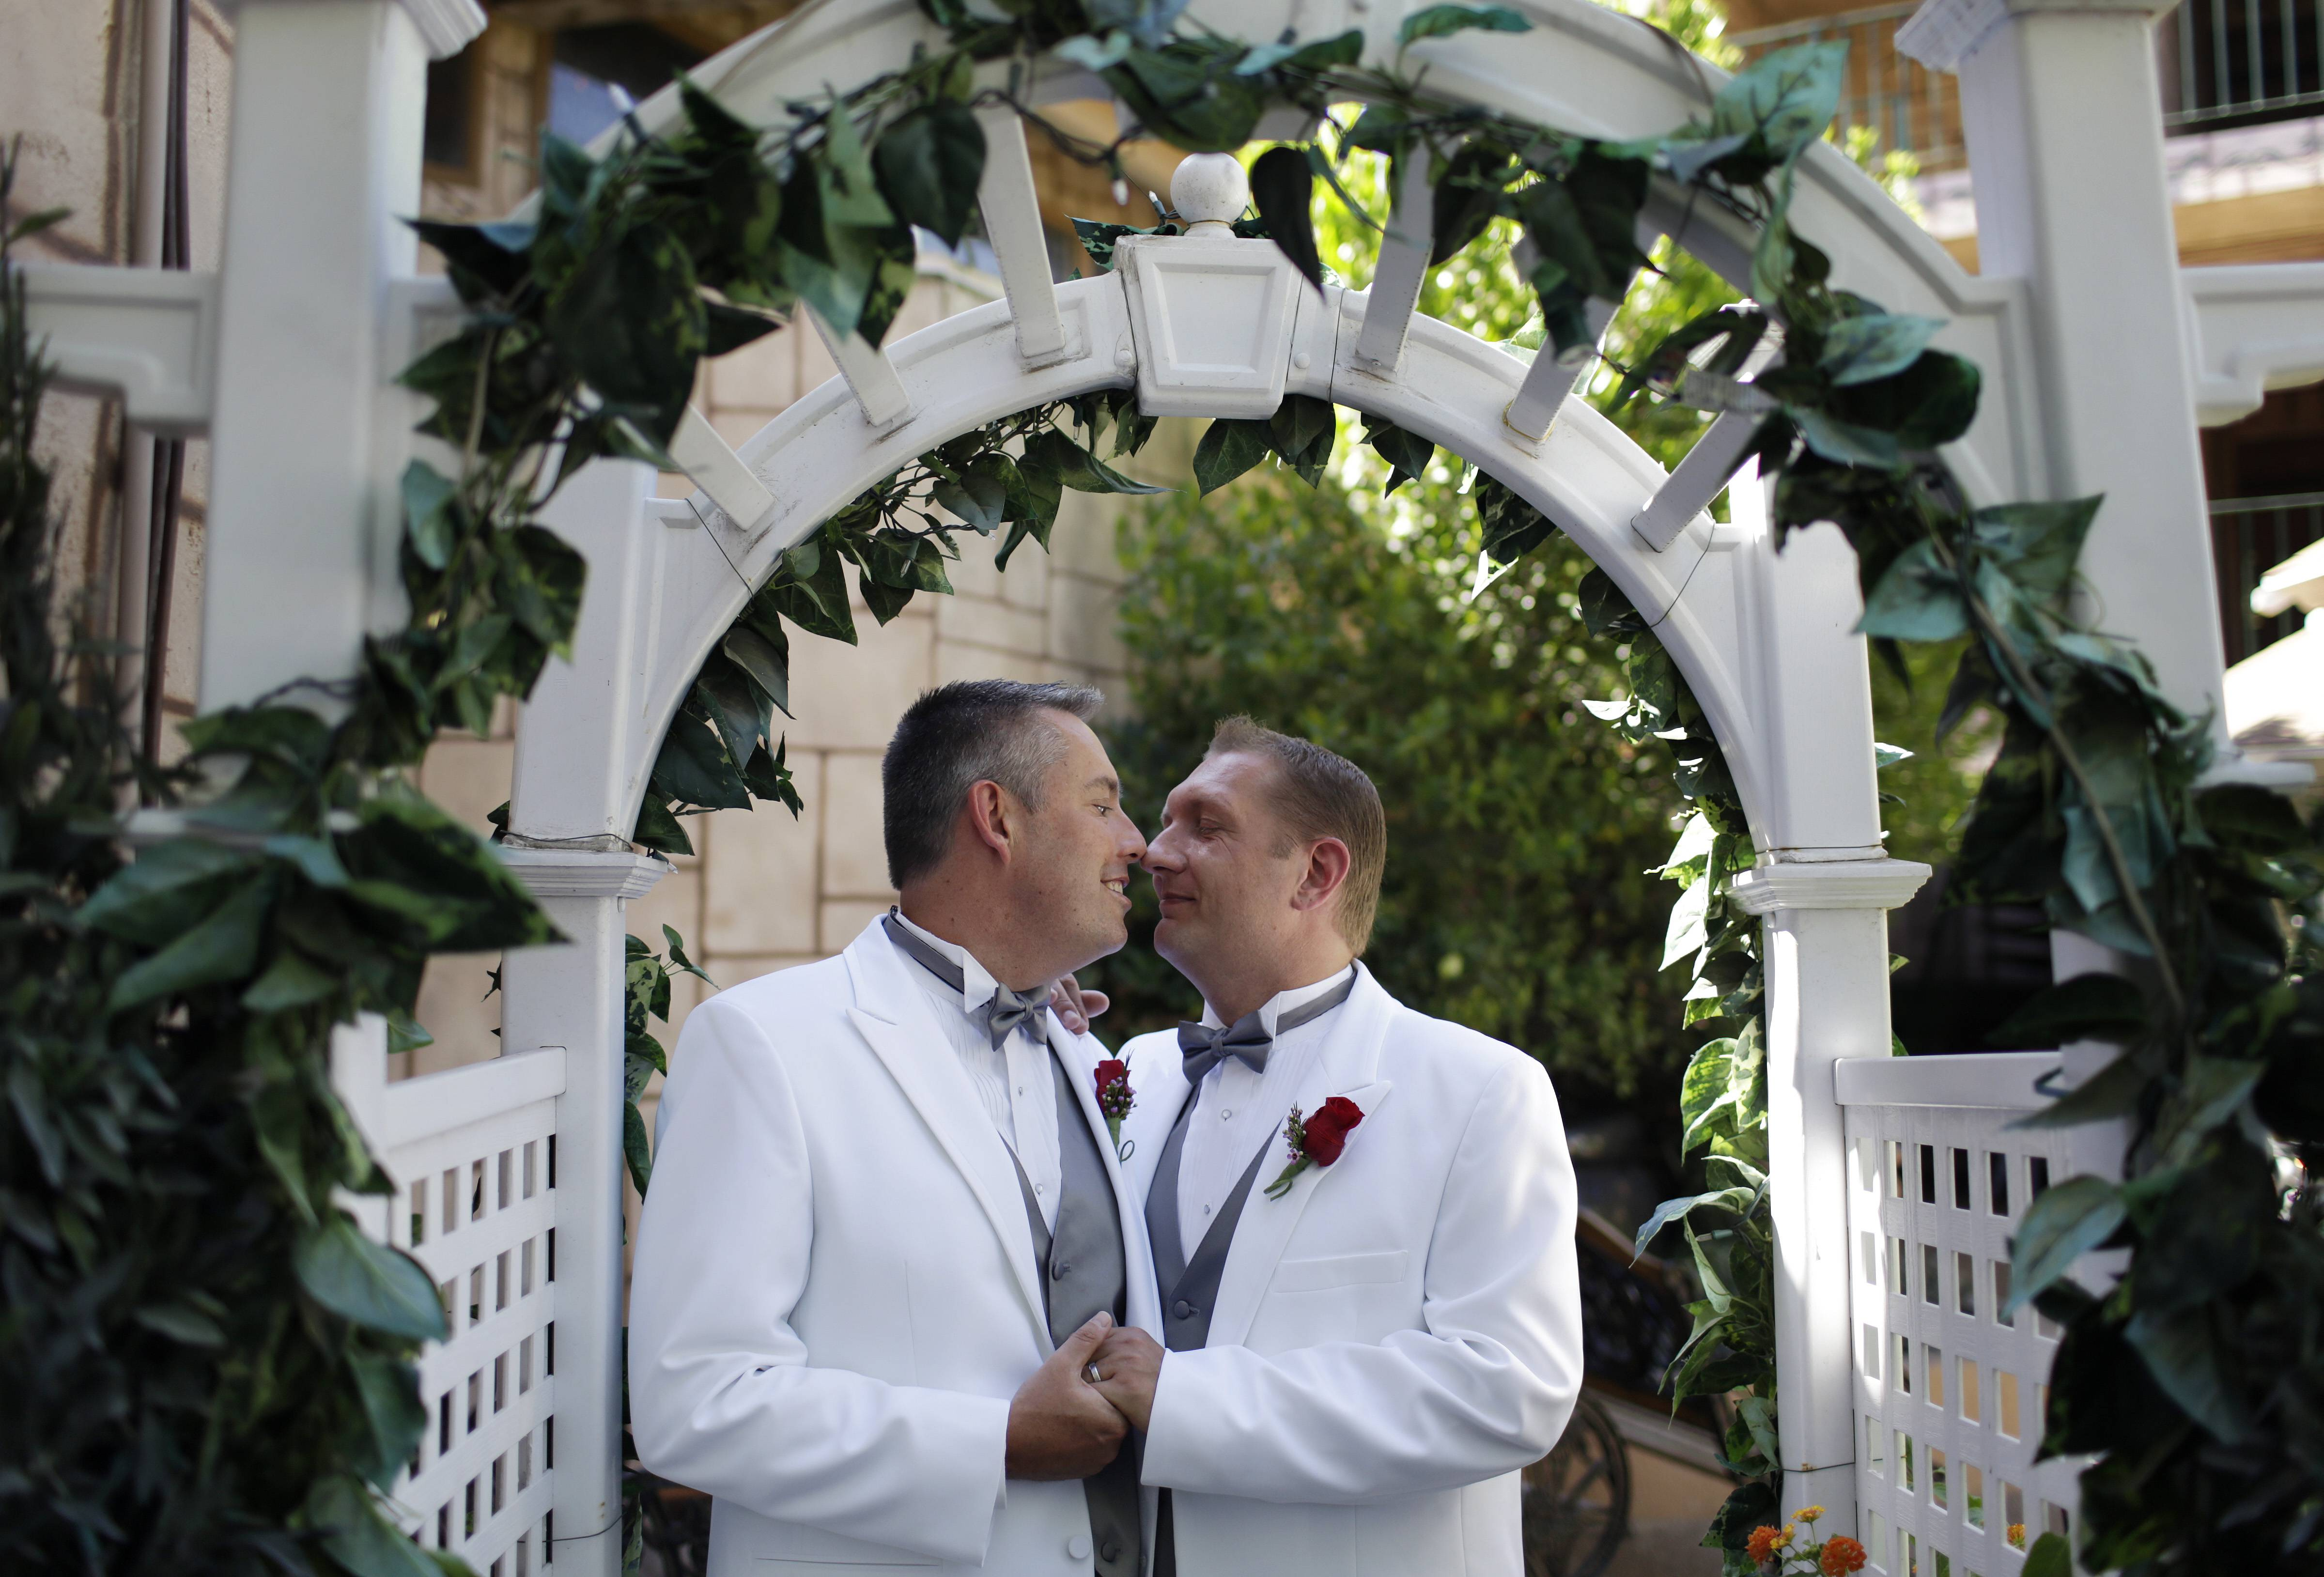 Scott McCann, left, and Jeremy Gilson of Nashua, N.H. have their commitment ceremony photos taken at the Viva Las Vegas Wedding Chapel in Las Vegas.